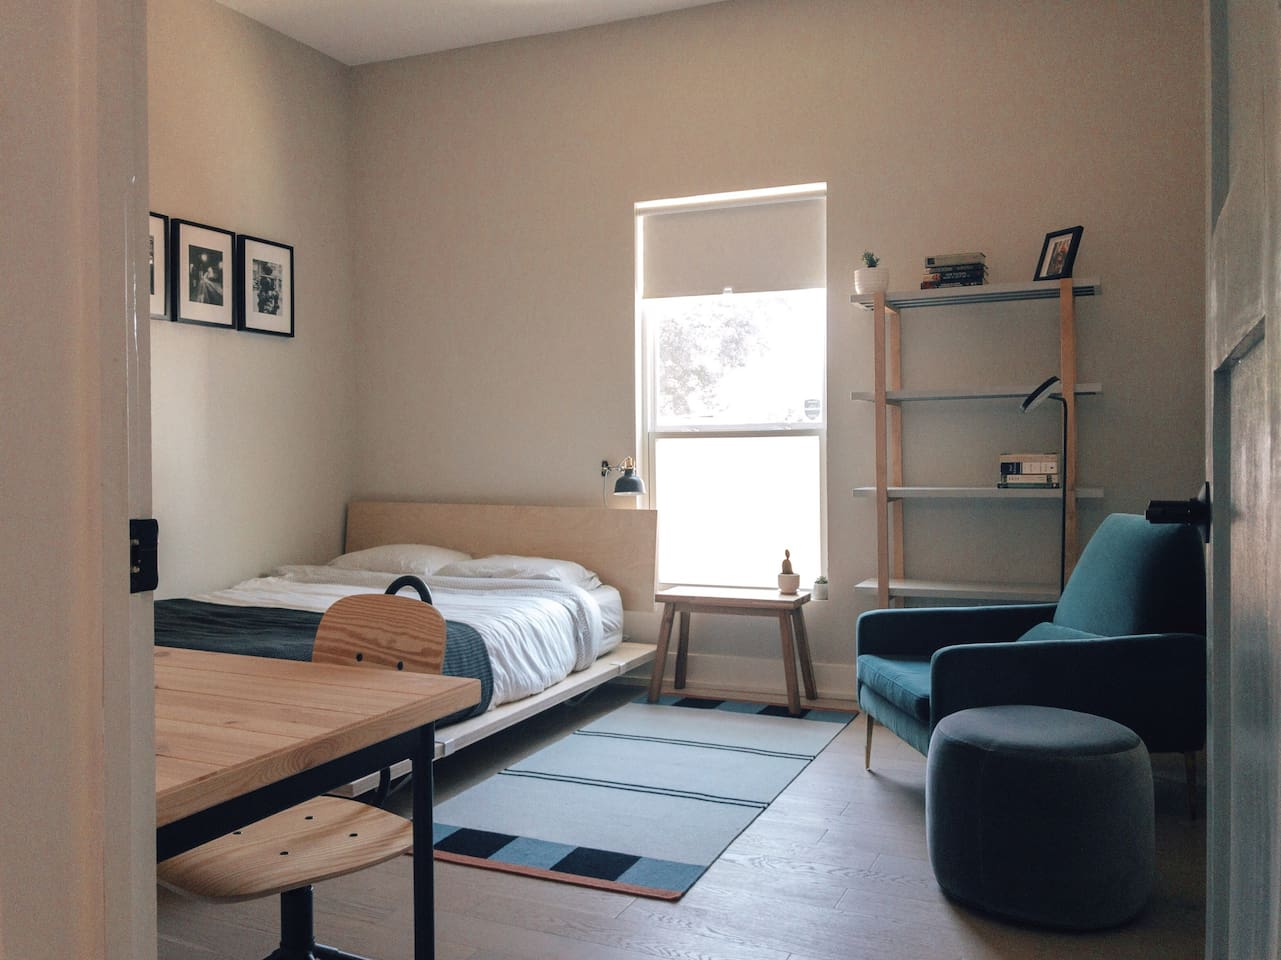 Modern and clutter free private bedroom and shared bathroom.